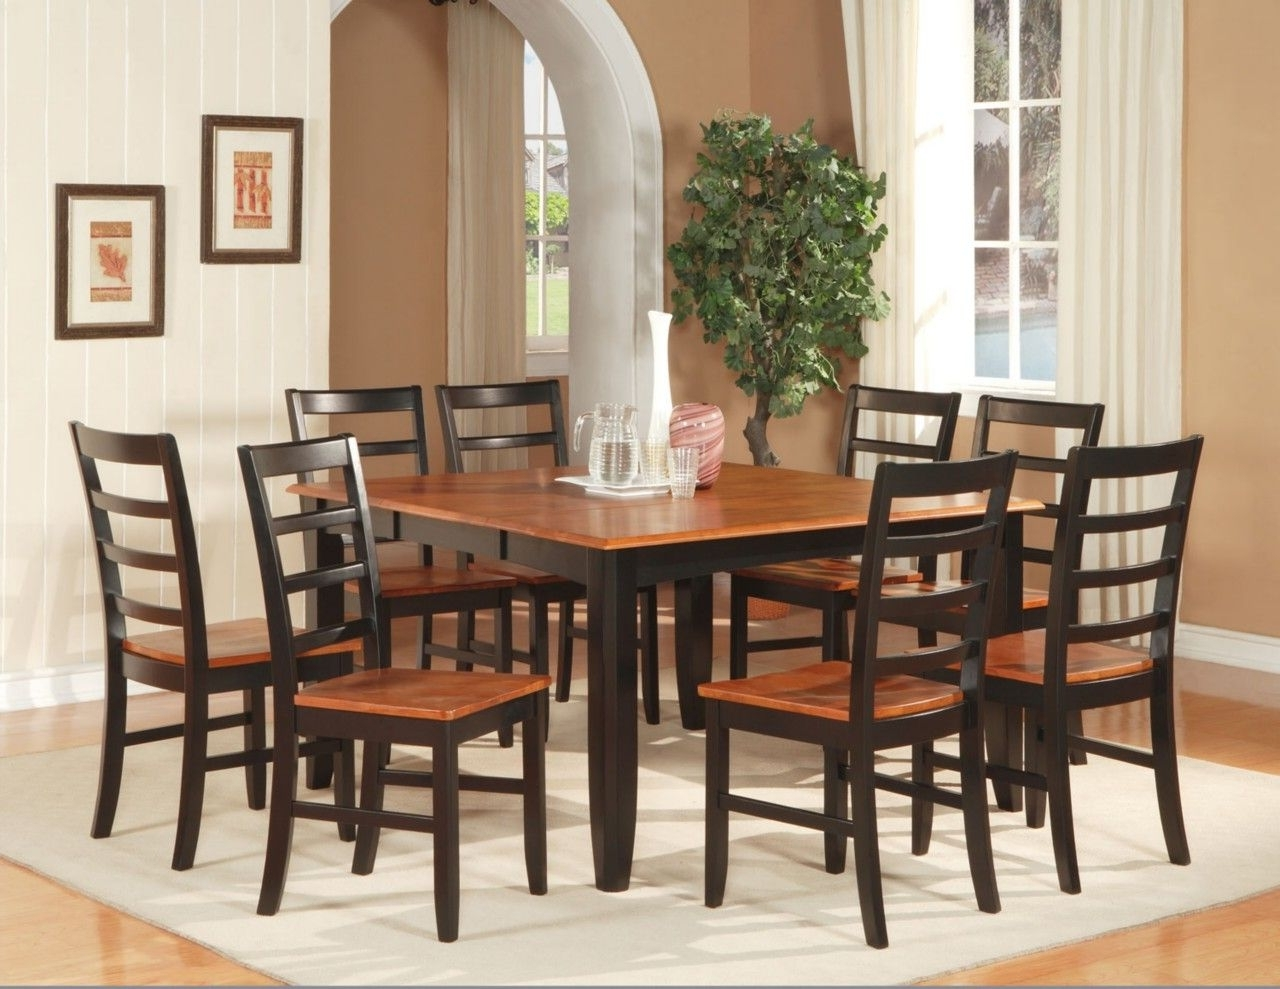 Dining Tables And 8 Chairs Sets Throughout Most Popular Dining Room Excellent Small Dining Room Furniture Sets With Dining (Gallery 7 of 25)